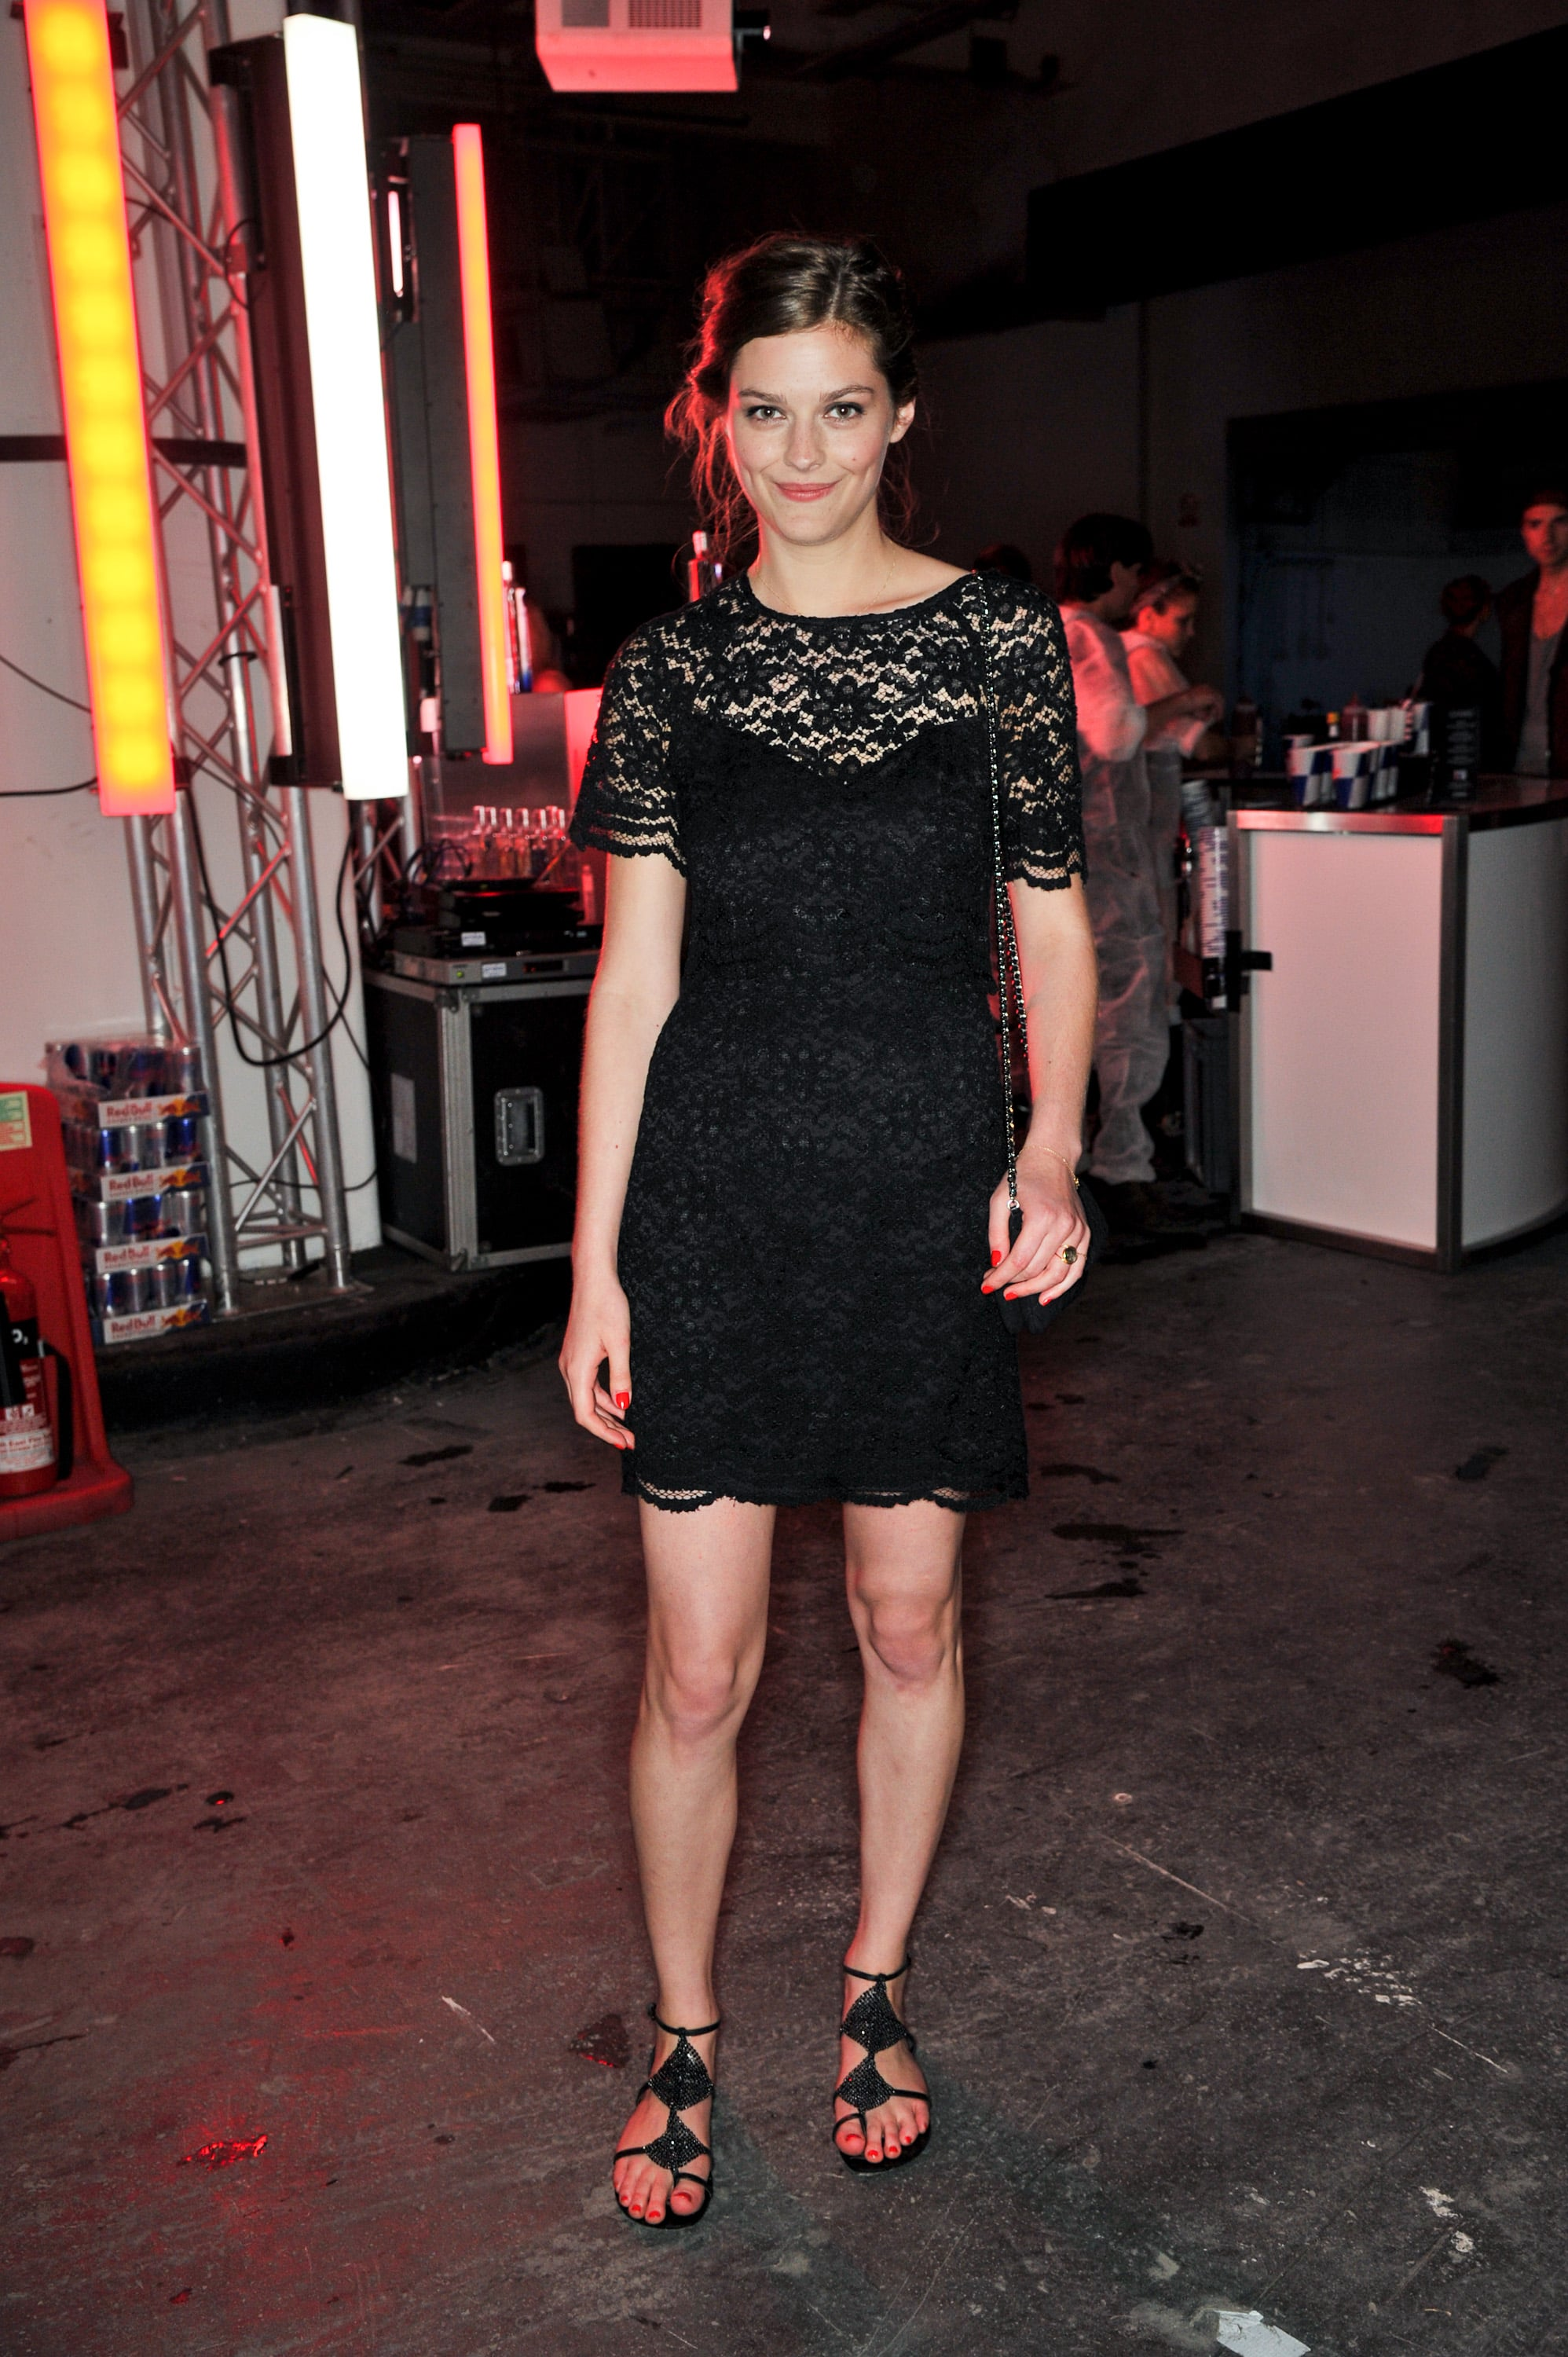 Amber Anderson looked lovely in lace at the London Lulu Guinness event.